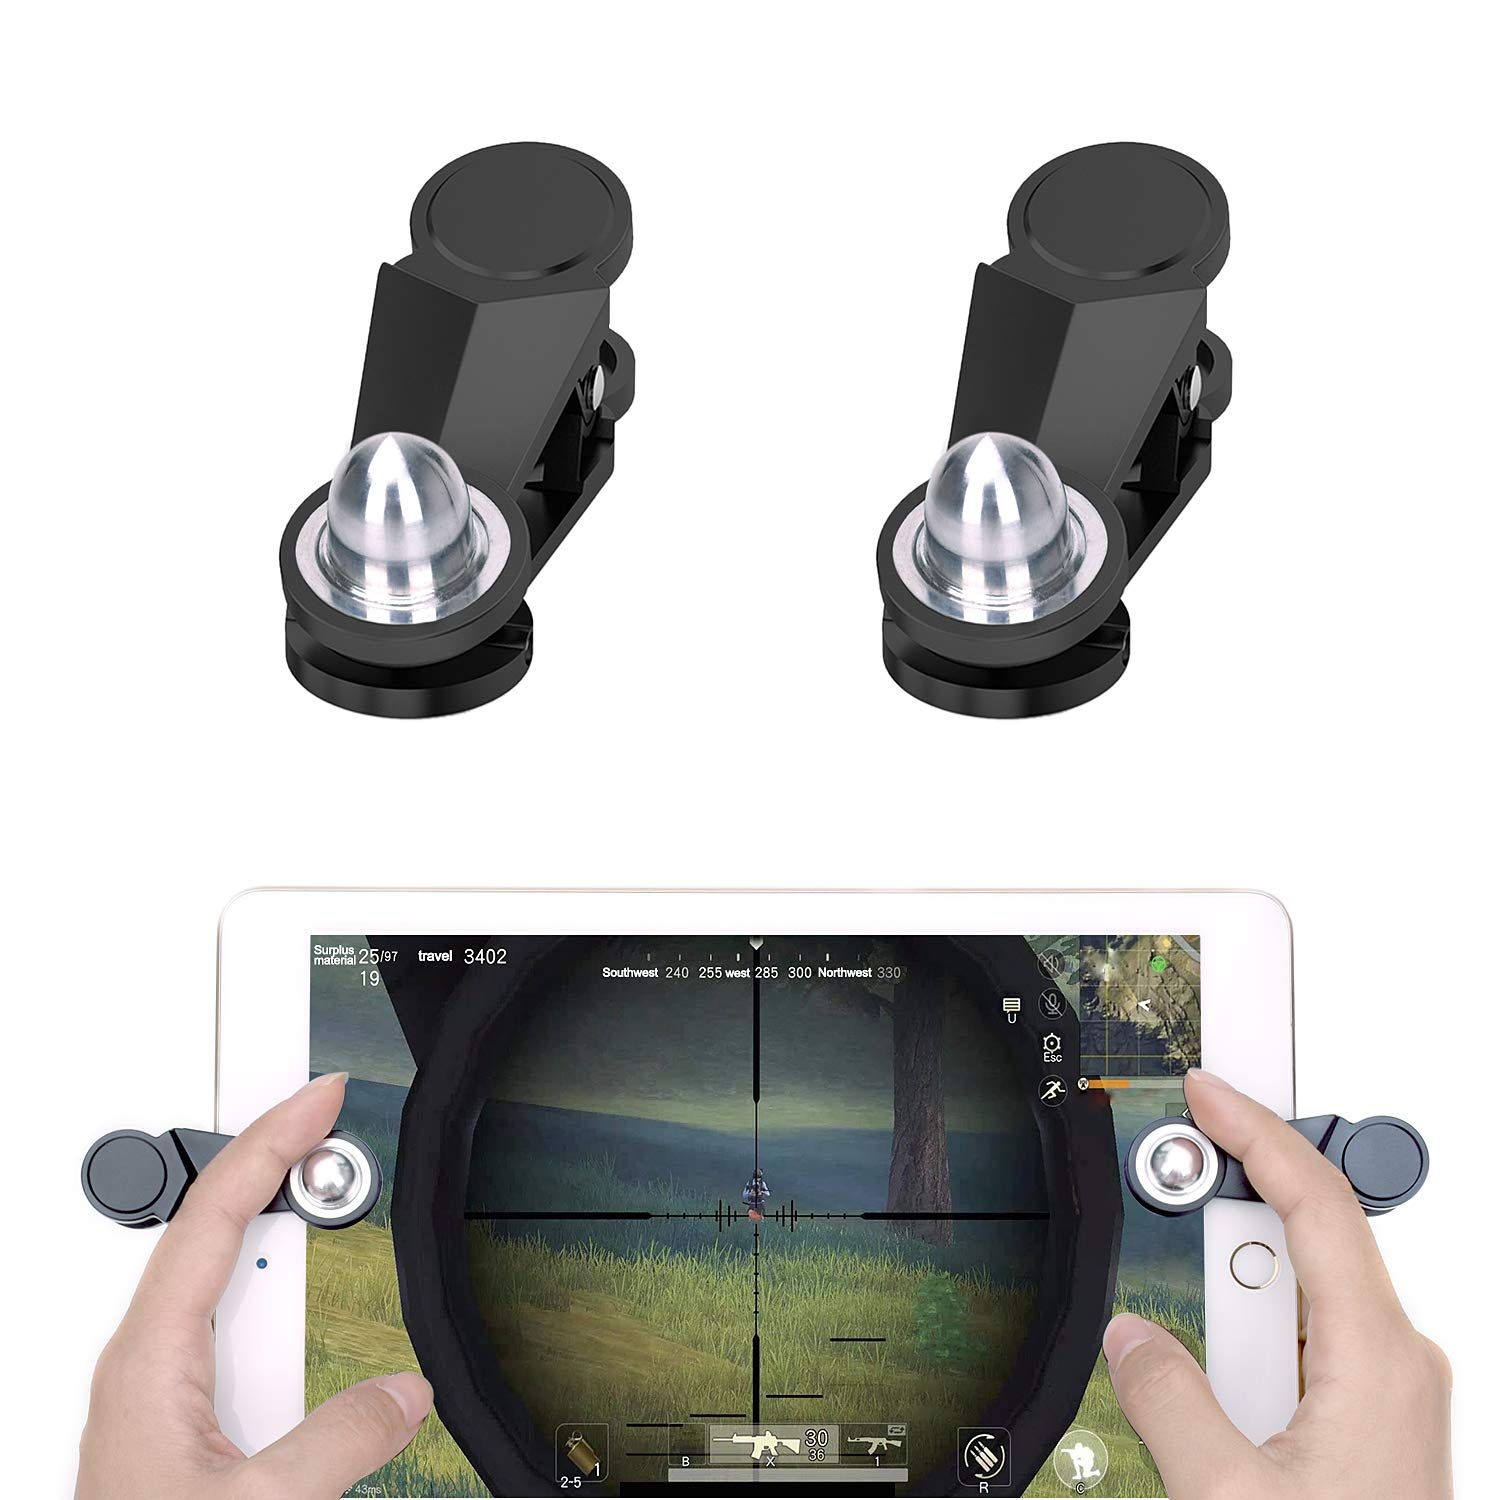 [2 Triggers] PUBG Fortnite Tablet Game Controller - GTOTd Ipad Game Accessories,Slates Game Trigger,L1R1 Sensitive Shoot and Aim,Gift for Kids and Player [New Version] (Black)